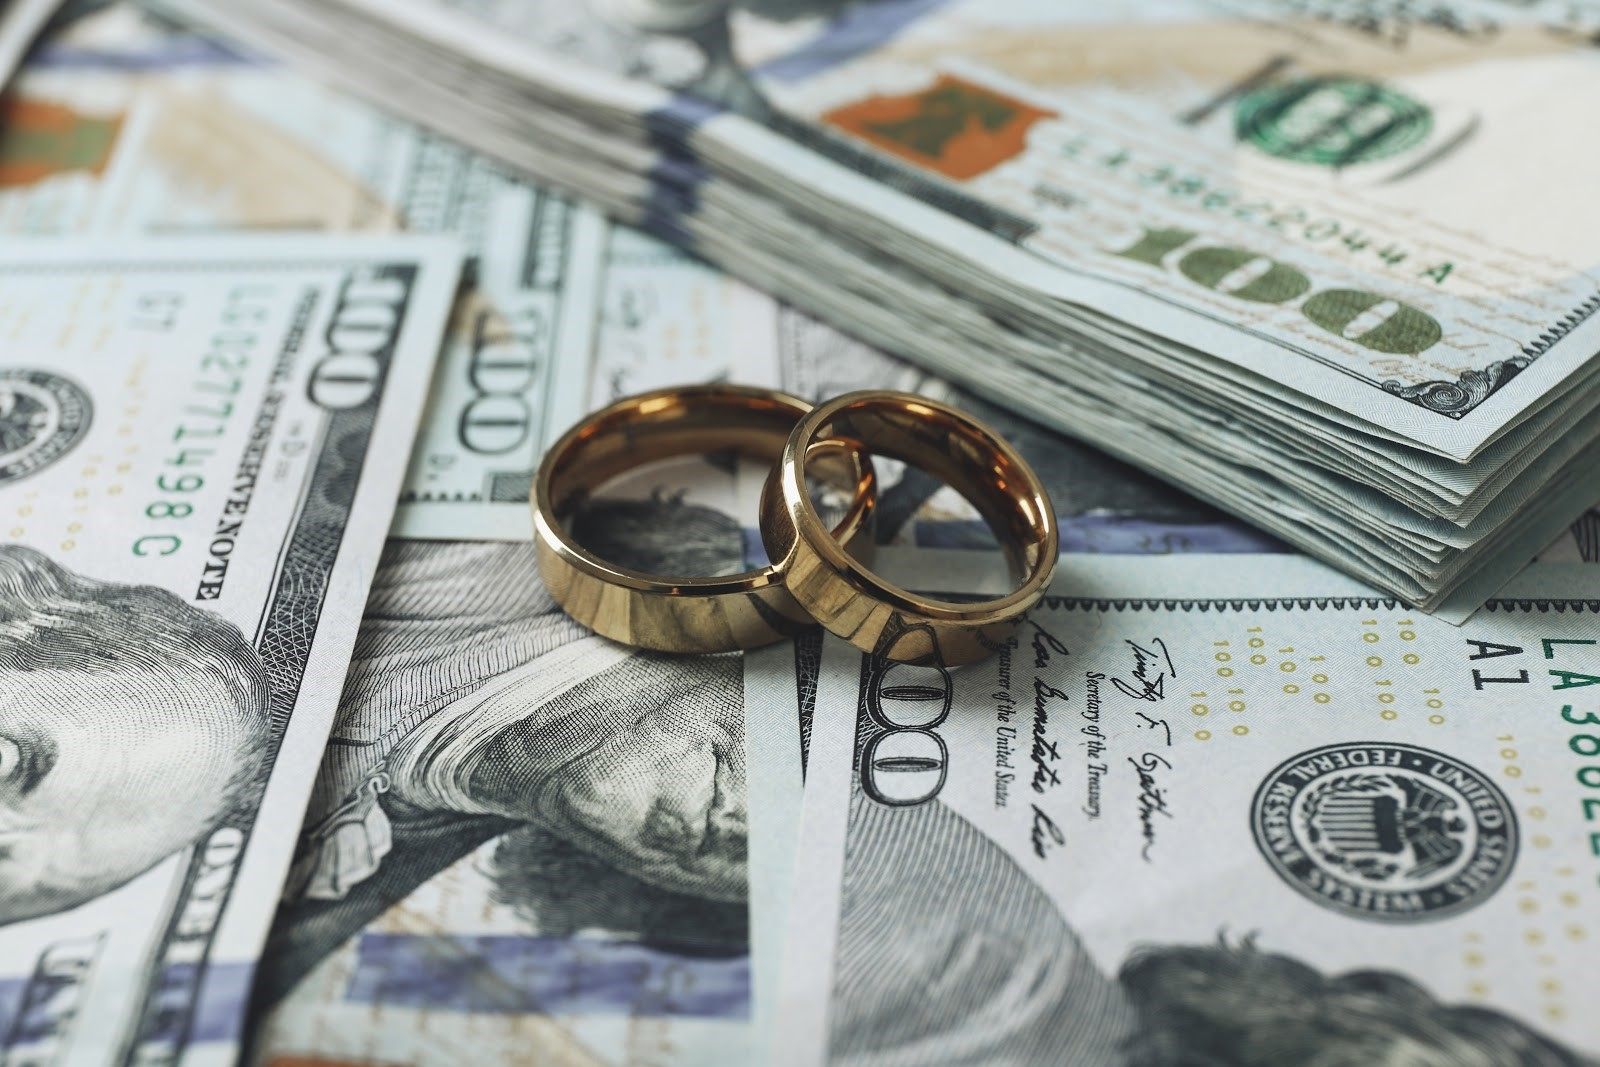 matrimonial-breach-of-fiduciary-matters